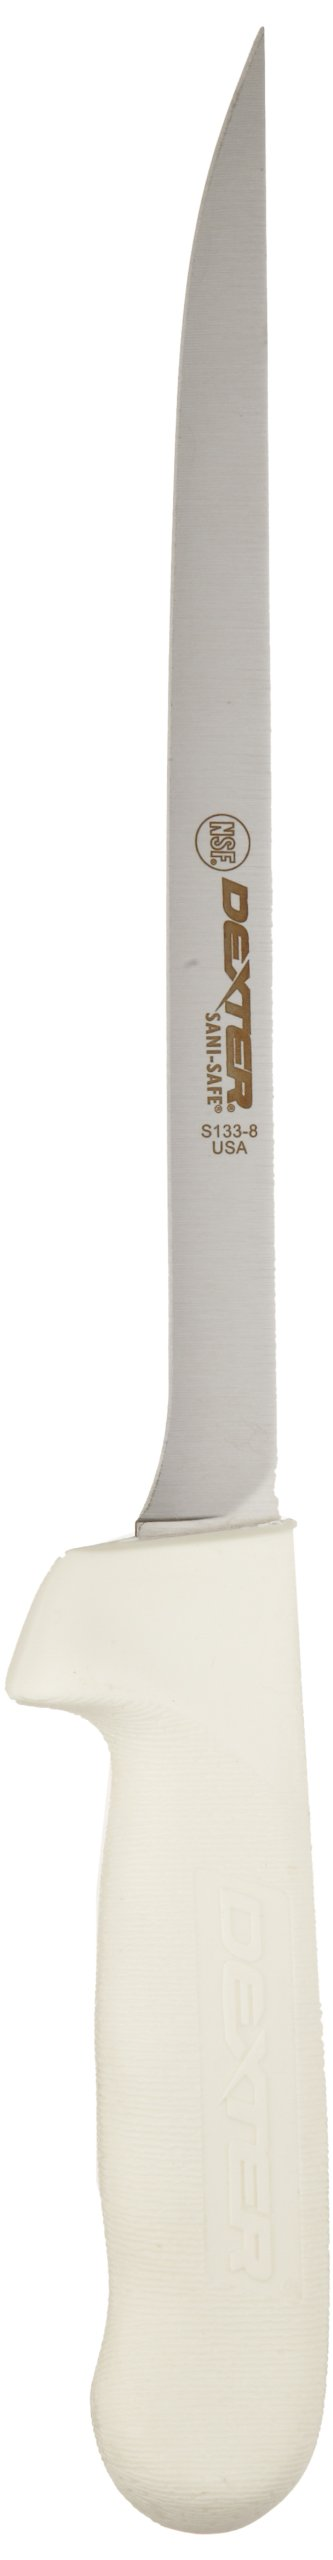 Sani-Safe S133-8-PCP 8'' White Narrow Fillet Knife with Polypropylene Handle